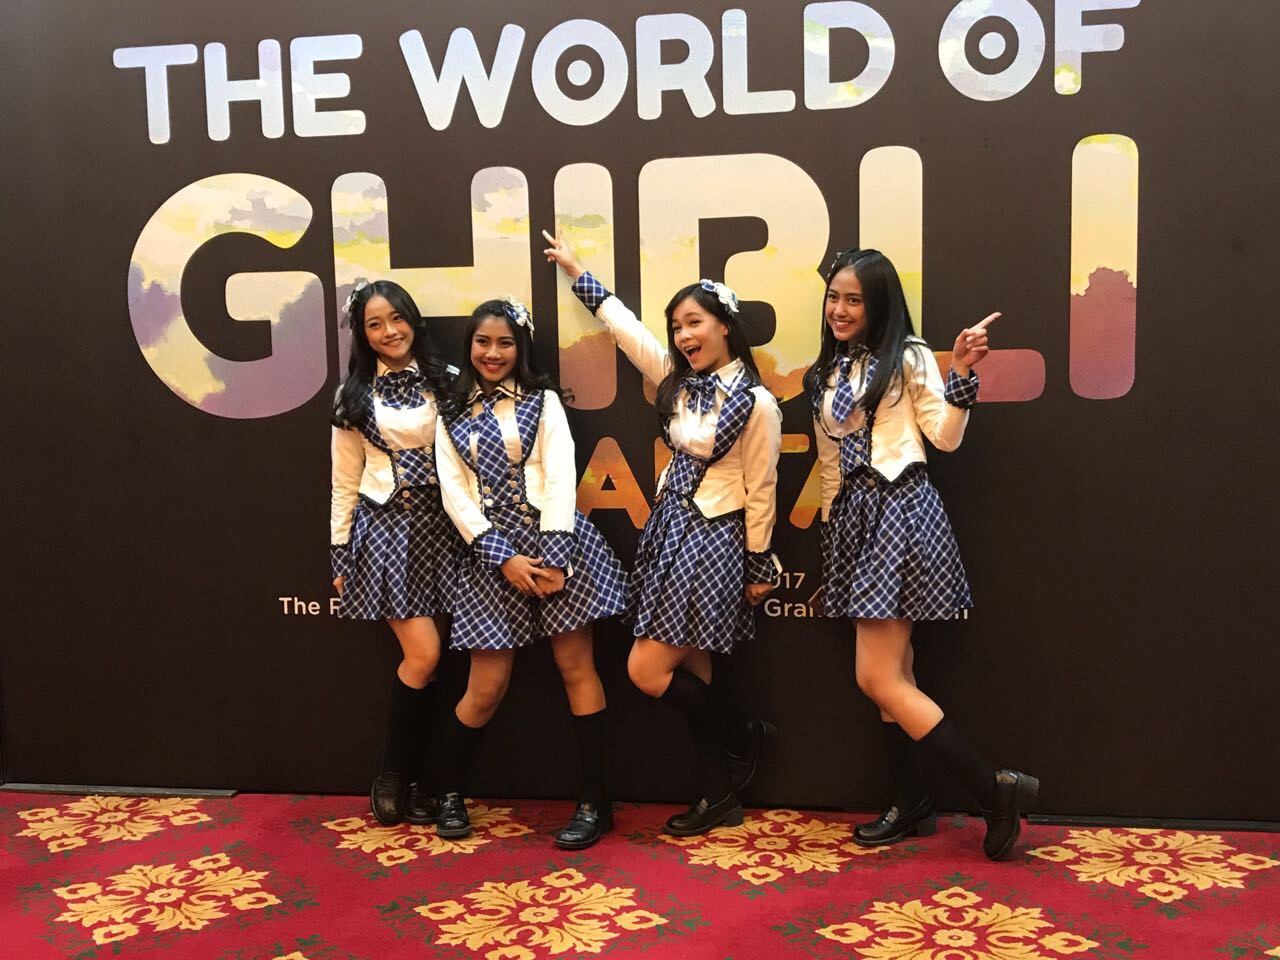 Marubeni Collaborated with JKT48 for The World of Ghibli Jakarta